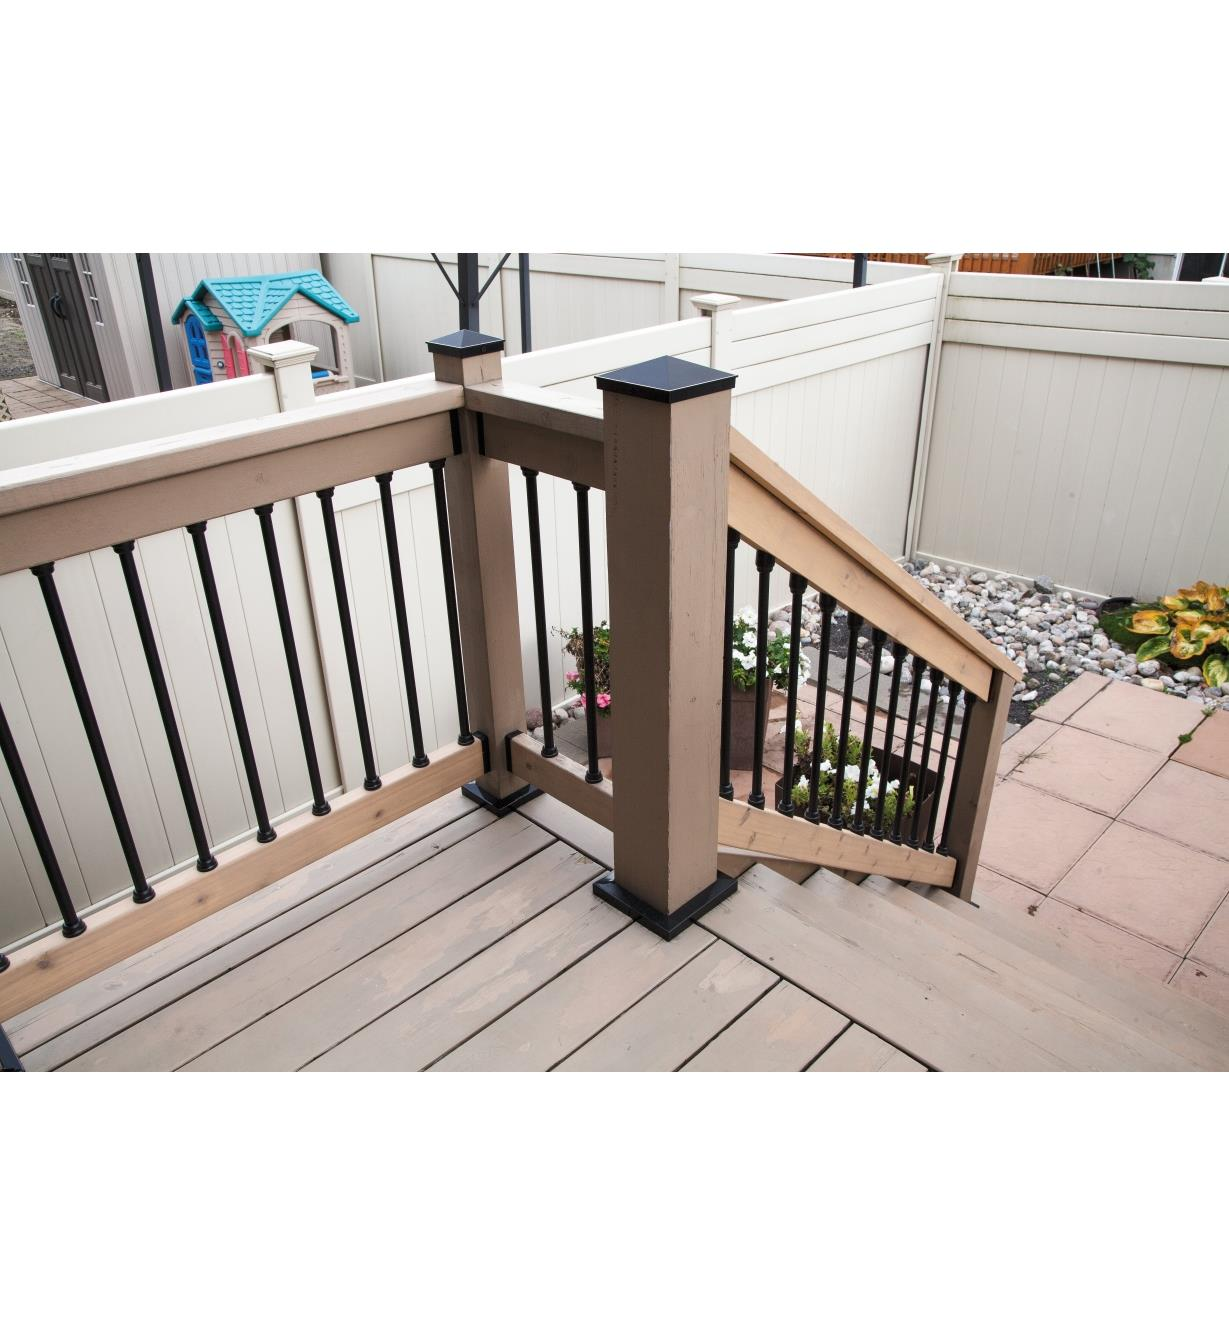 Example of deck built with the Titan Snap 'N Lock Baluster System